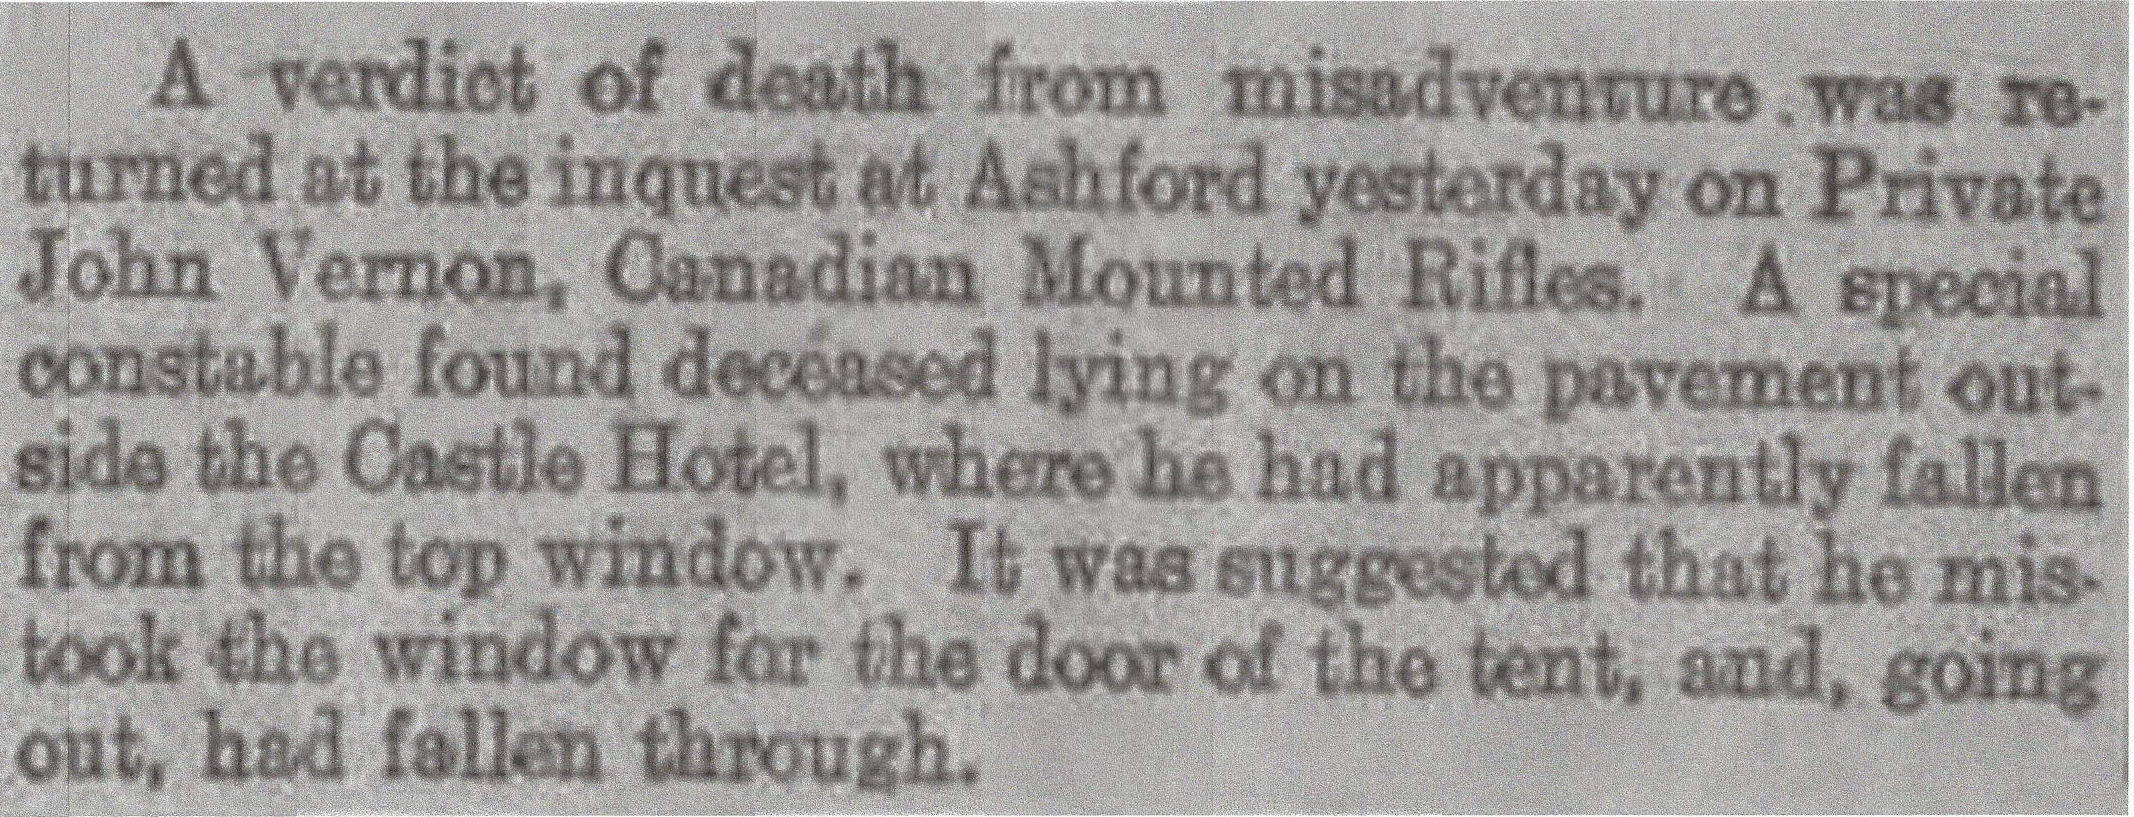 Newspaper Clipping– Newspaper clipping from Daily Telegraph of October 13, 1915. Image taken from web address of http://www.telegraph.co.uk/news/ww1-archive/11922630/Daily-Telegraph-October-13-1915.html